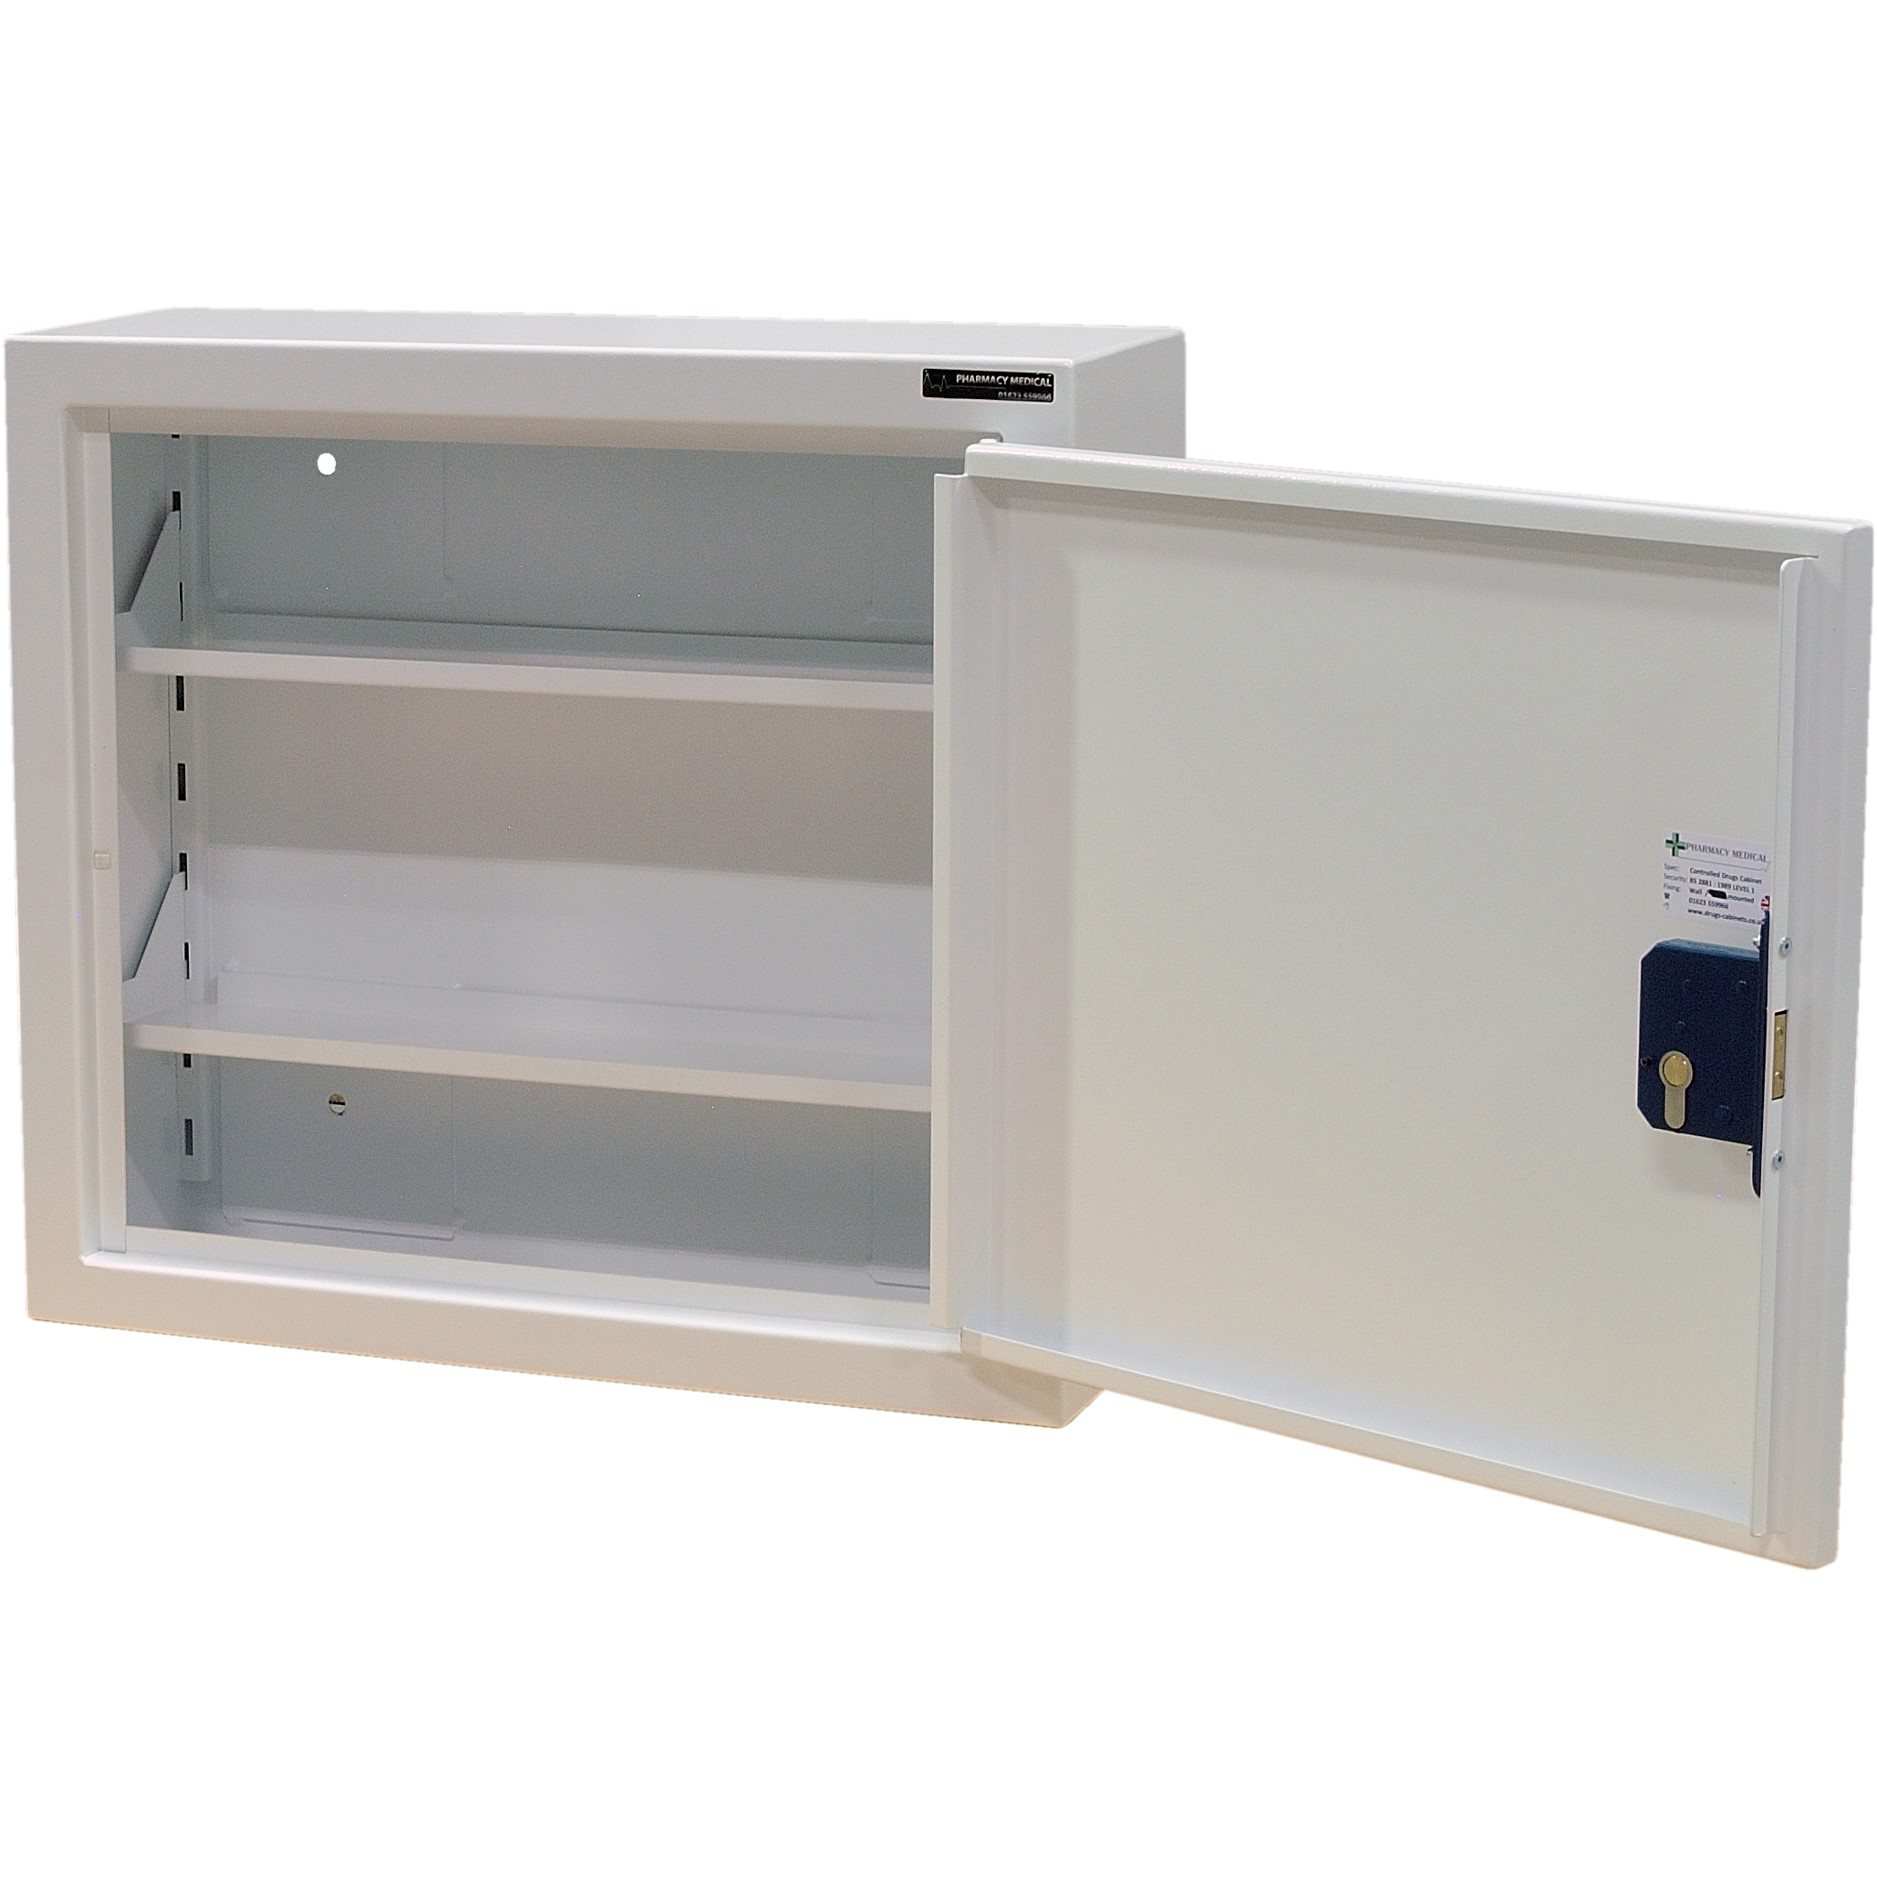 Sa101s controlled drugs cabinet controlled drug storage for Cabinets 101